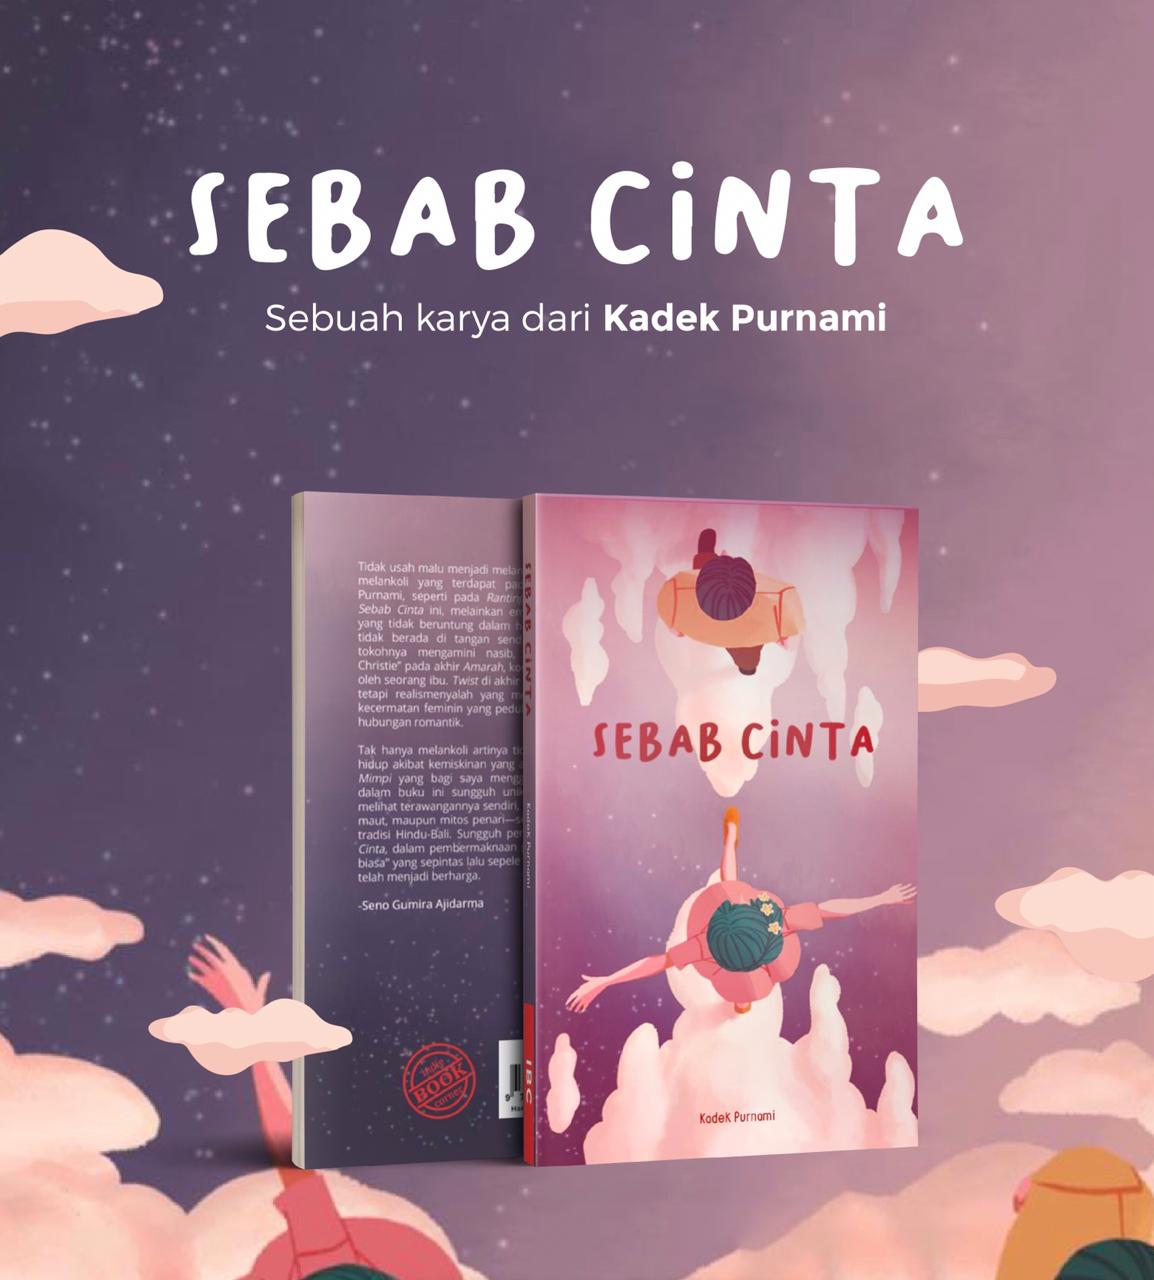 https://highend-traveller.com/reprint-of-the-short-stories-compilation-sebab-cinta-by-kadek-purnami-and-its-transition-to-audiobook/